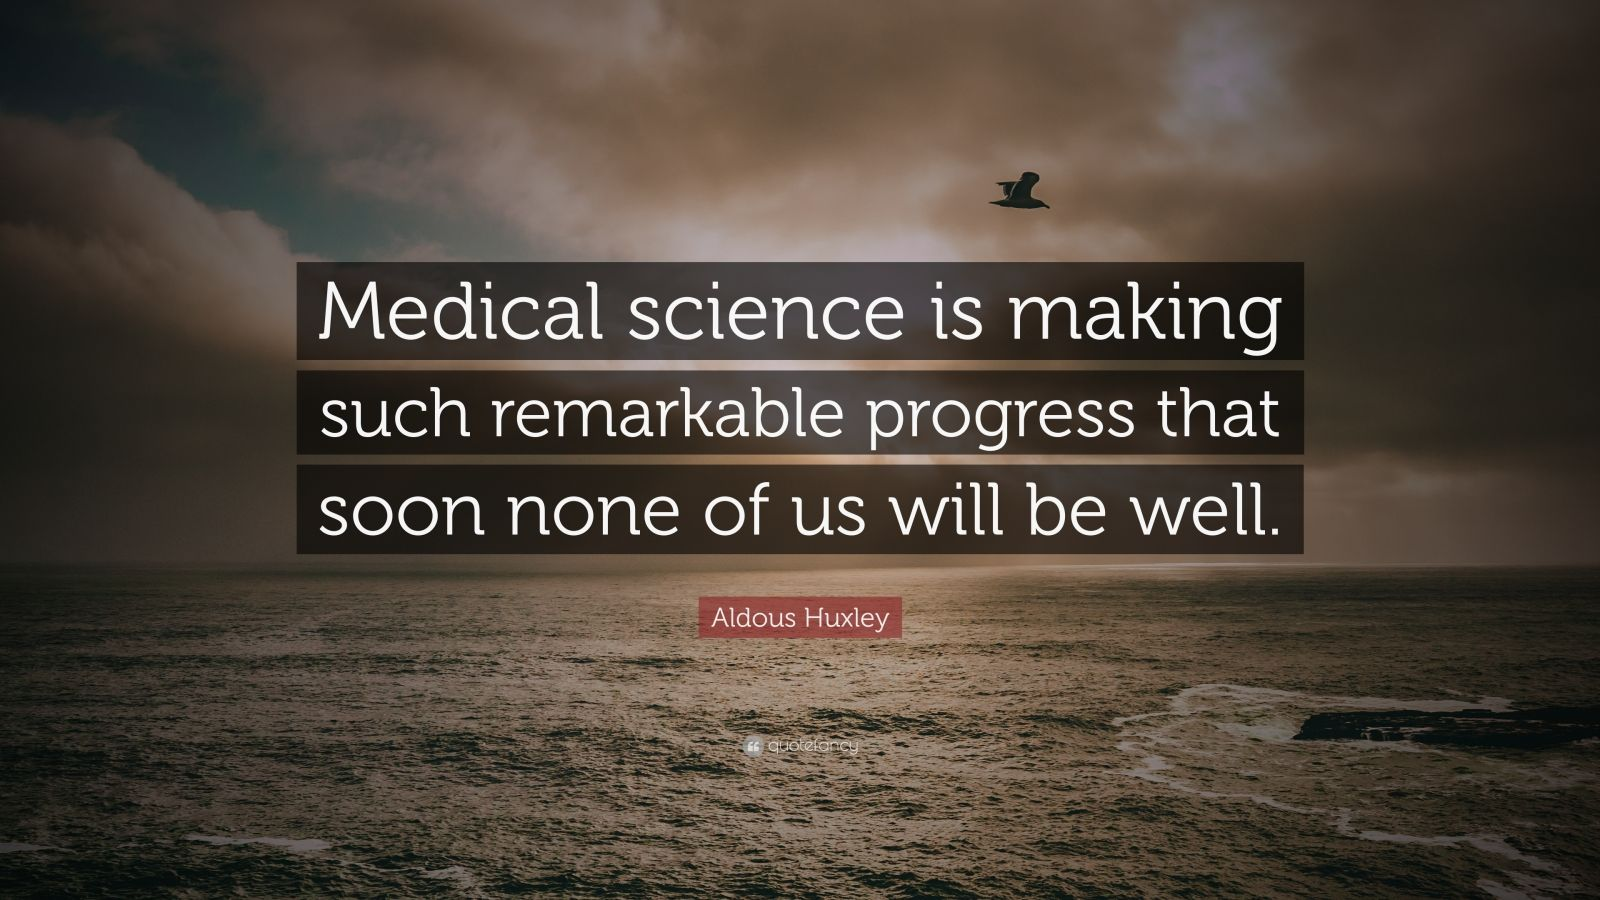 """Aldous Huxley Quote: """"Medical science is making such remarkable progress that soon none of us will be well."""""""